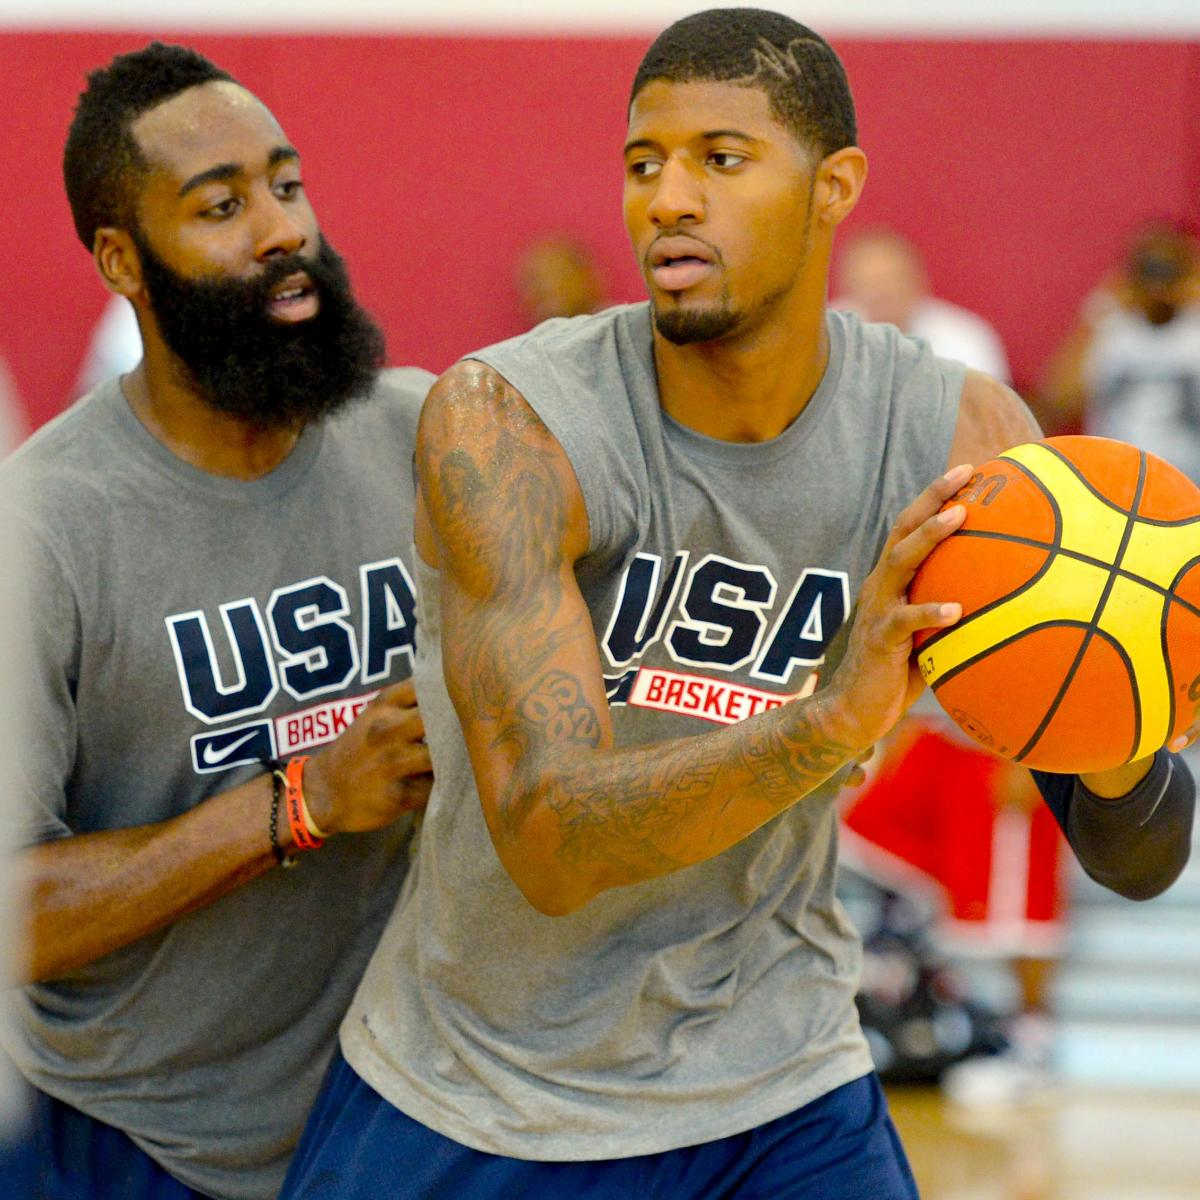 James Harden Basketball Camp: Predicting The USA Basketball Men's National Team Roster